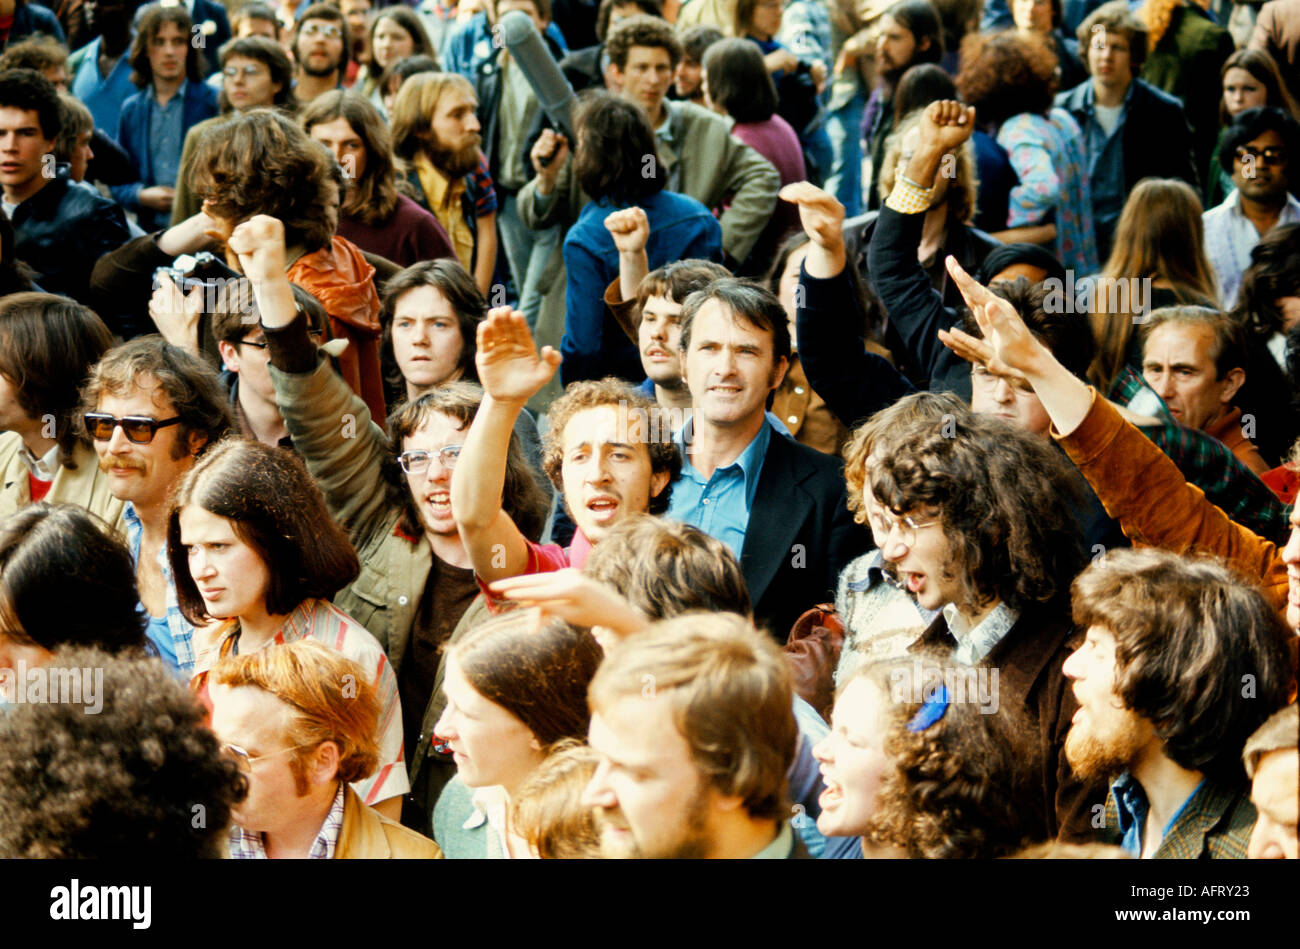 Grunwick industrial dispute and strike. Flying pickets support Asian women at the film processing factory strike 1977 1970s UK HOMER SYKES - Stock Image